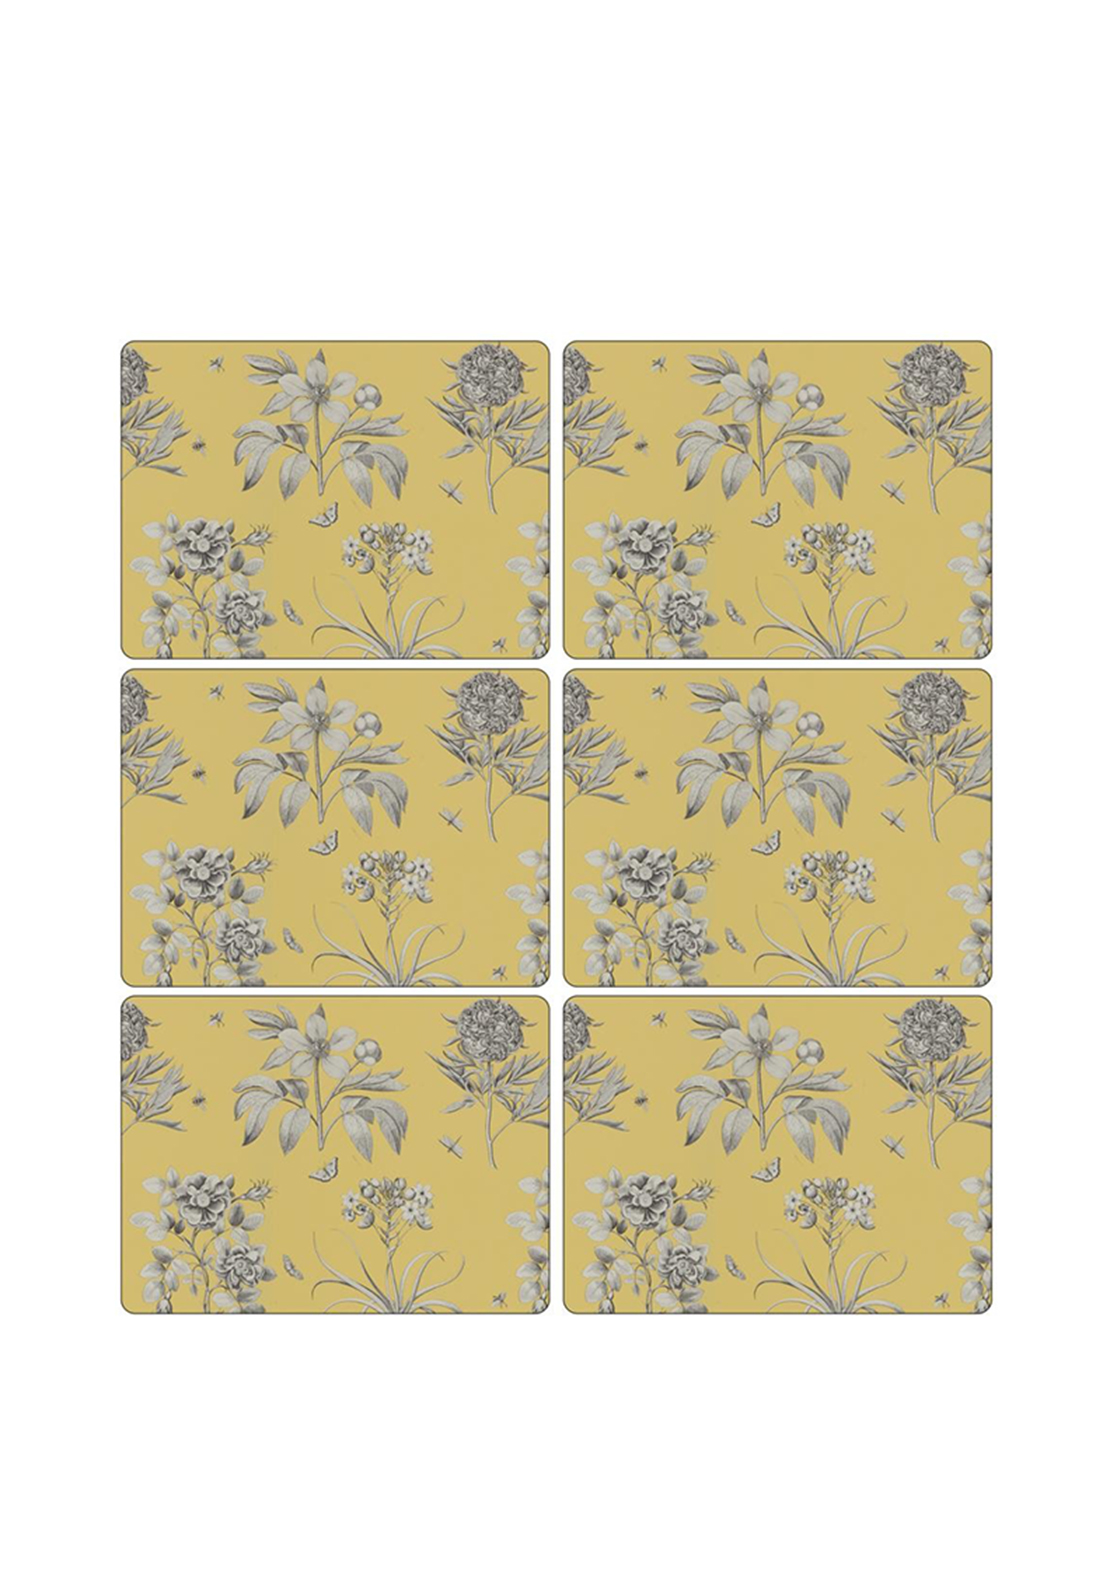 Pimpernel Etchings & Roses Set of 6 Placemats